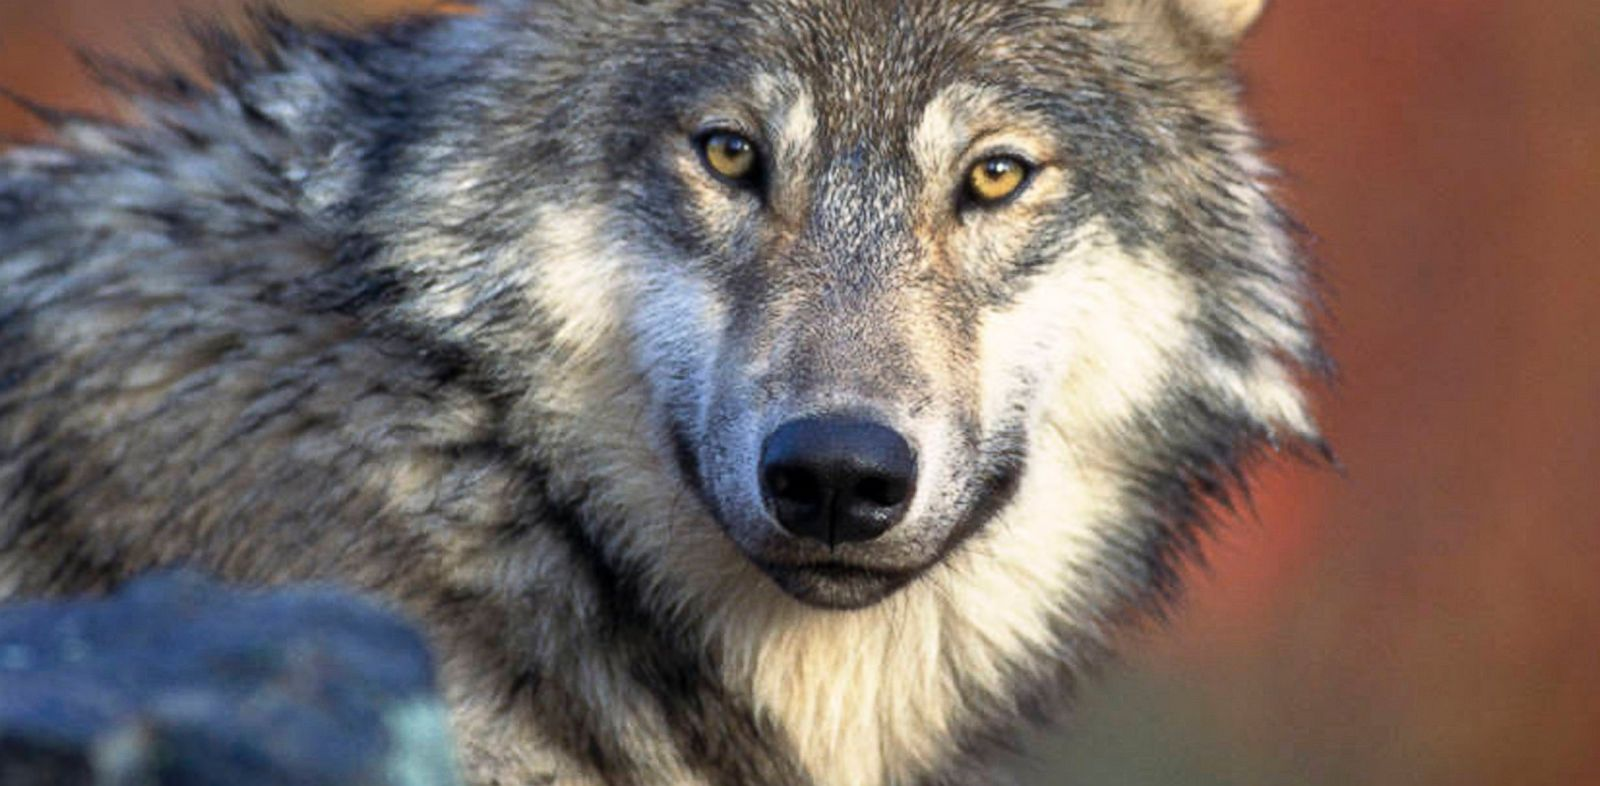 PHOTO: A gray wolf is shown it this photo provided by the U.S. Fish and Wildlife, April 18, 2008.